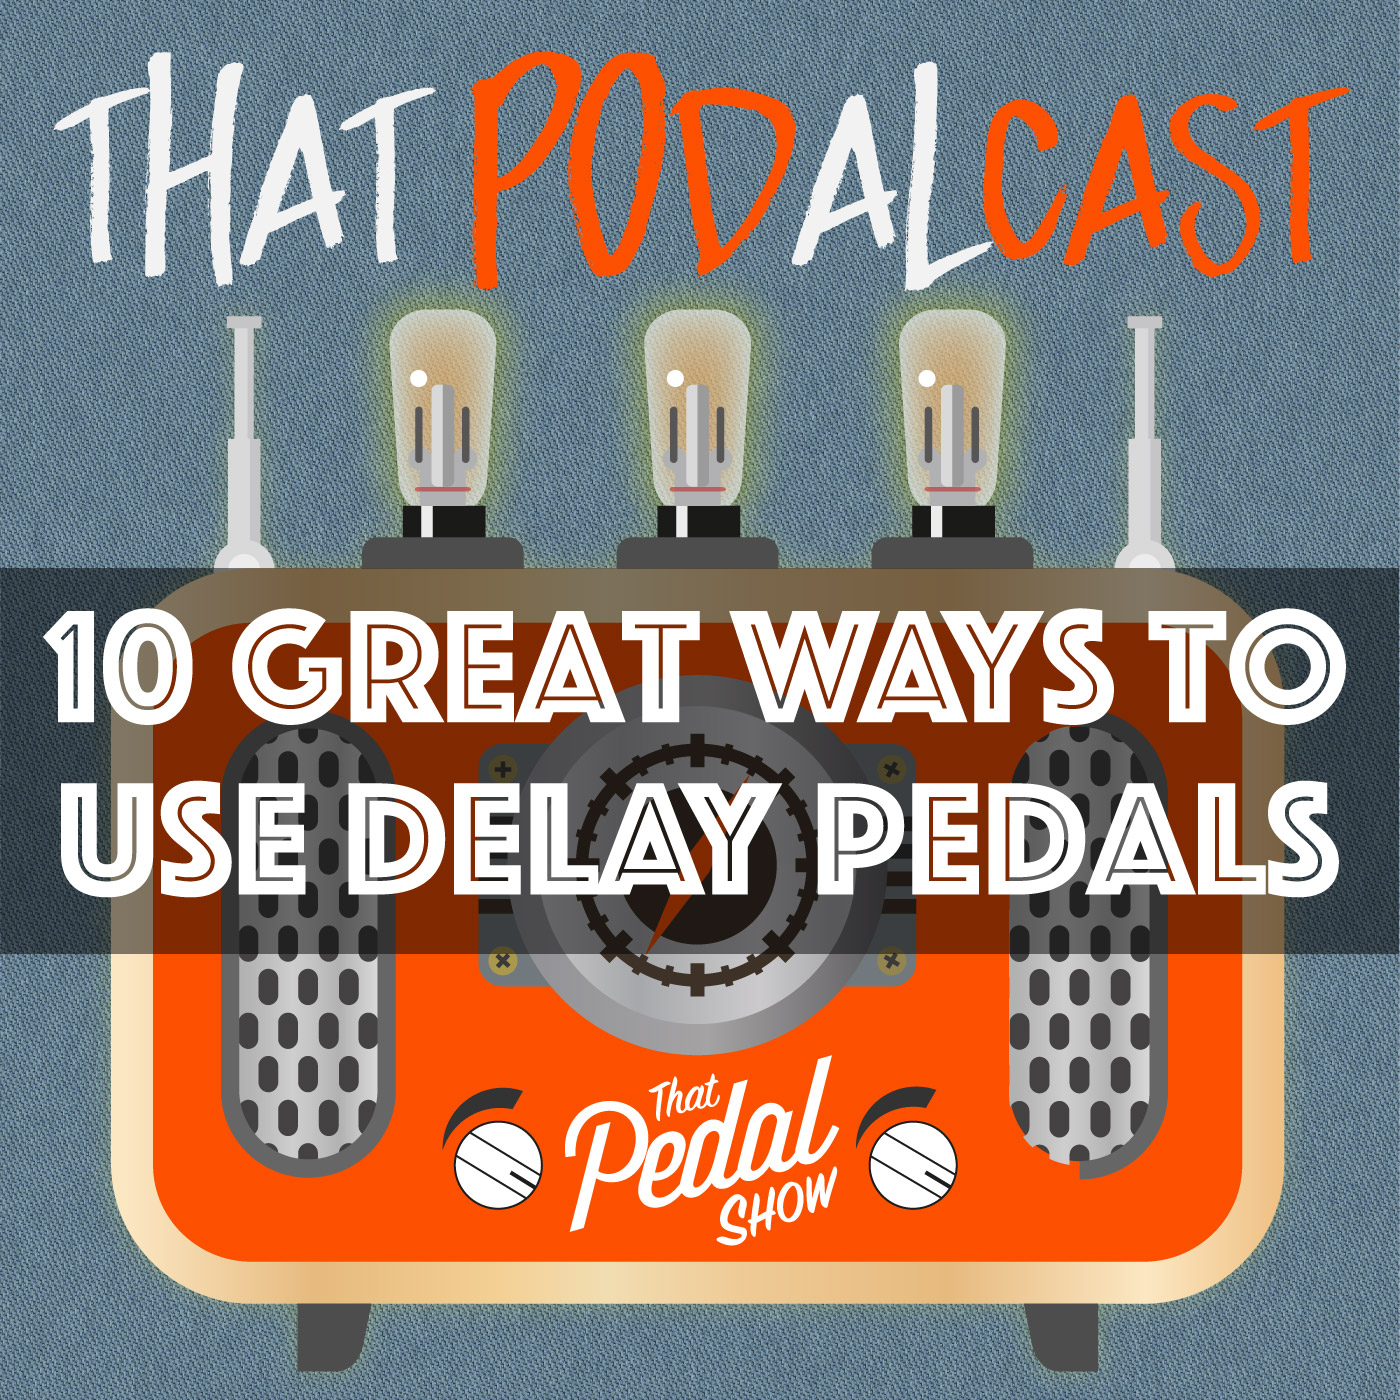 10 Great Ways To Use Your Delay Pedals